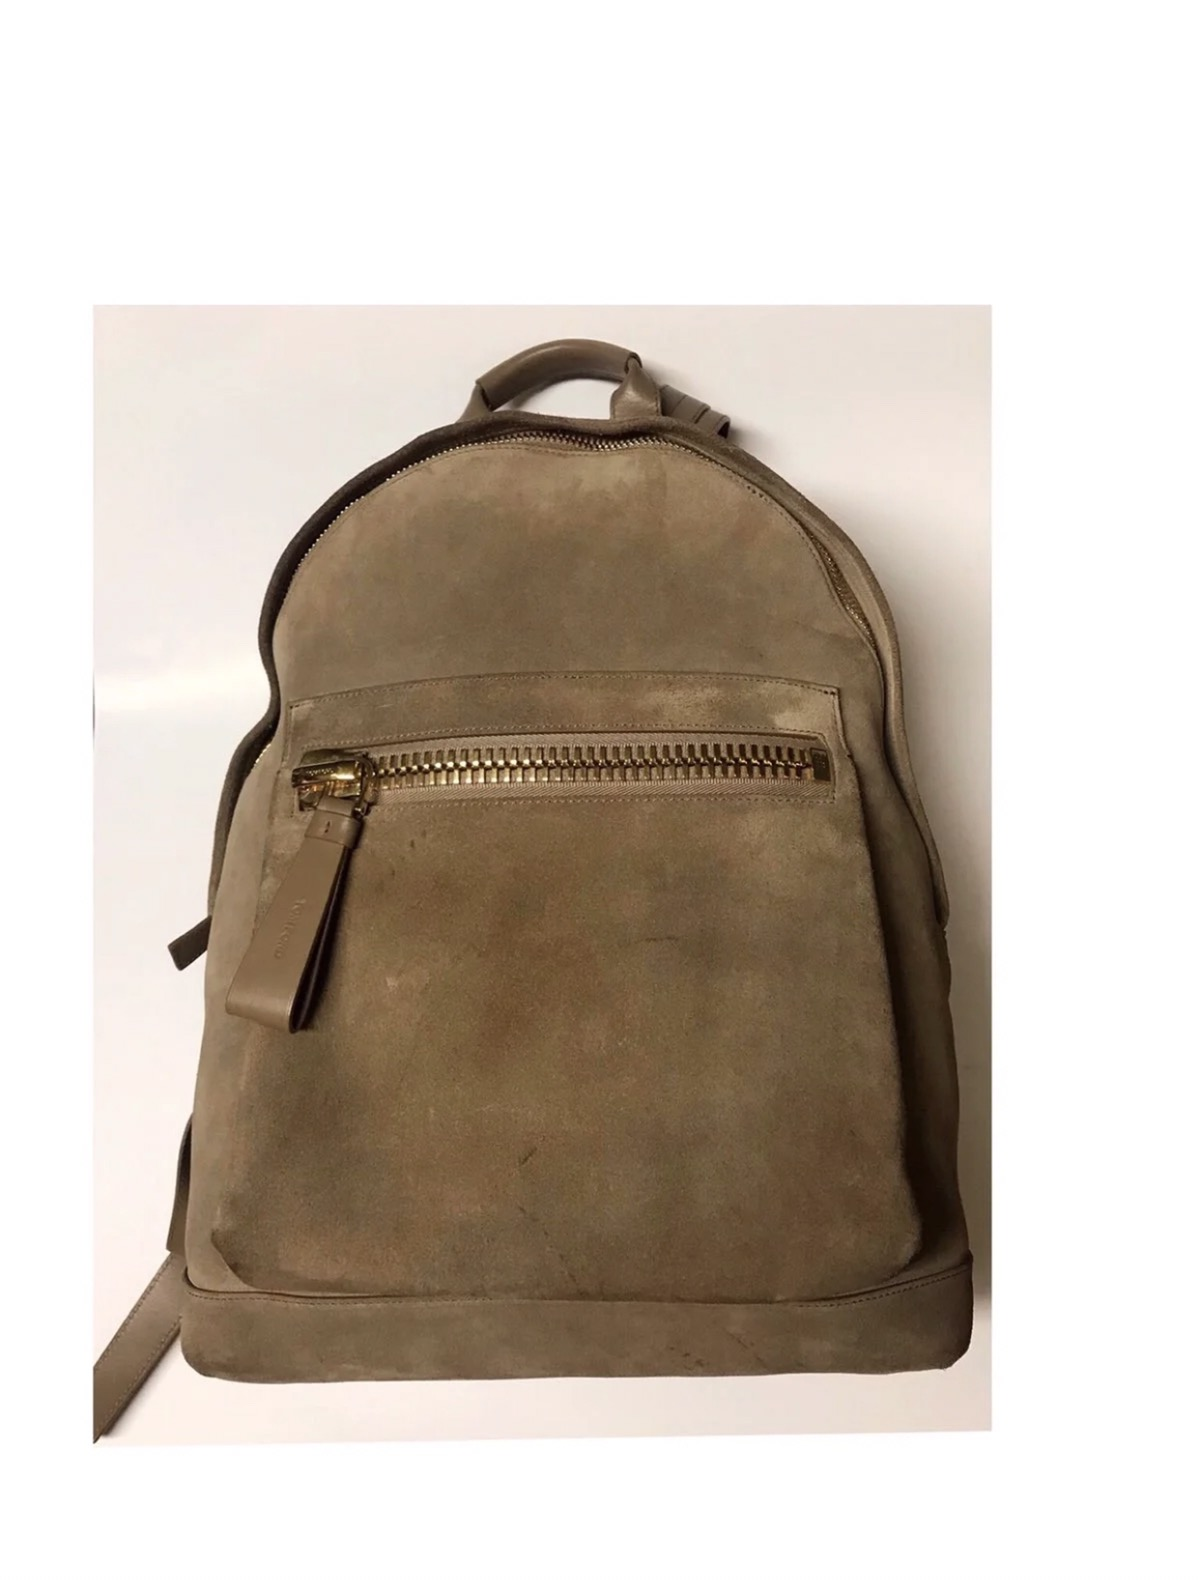 c0885c0a9552 Tom Ford Suede Buckley Backpack